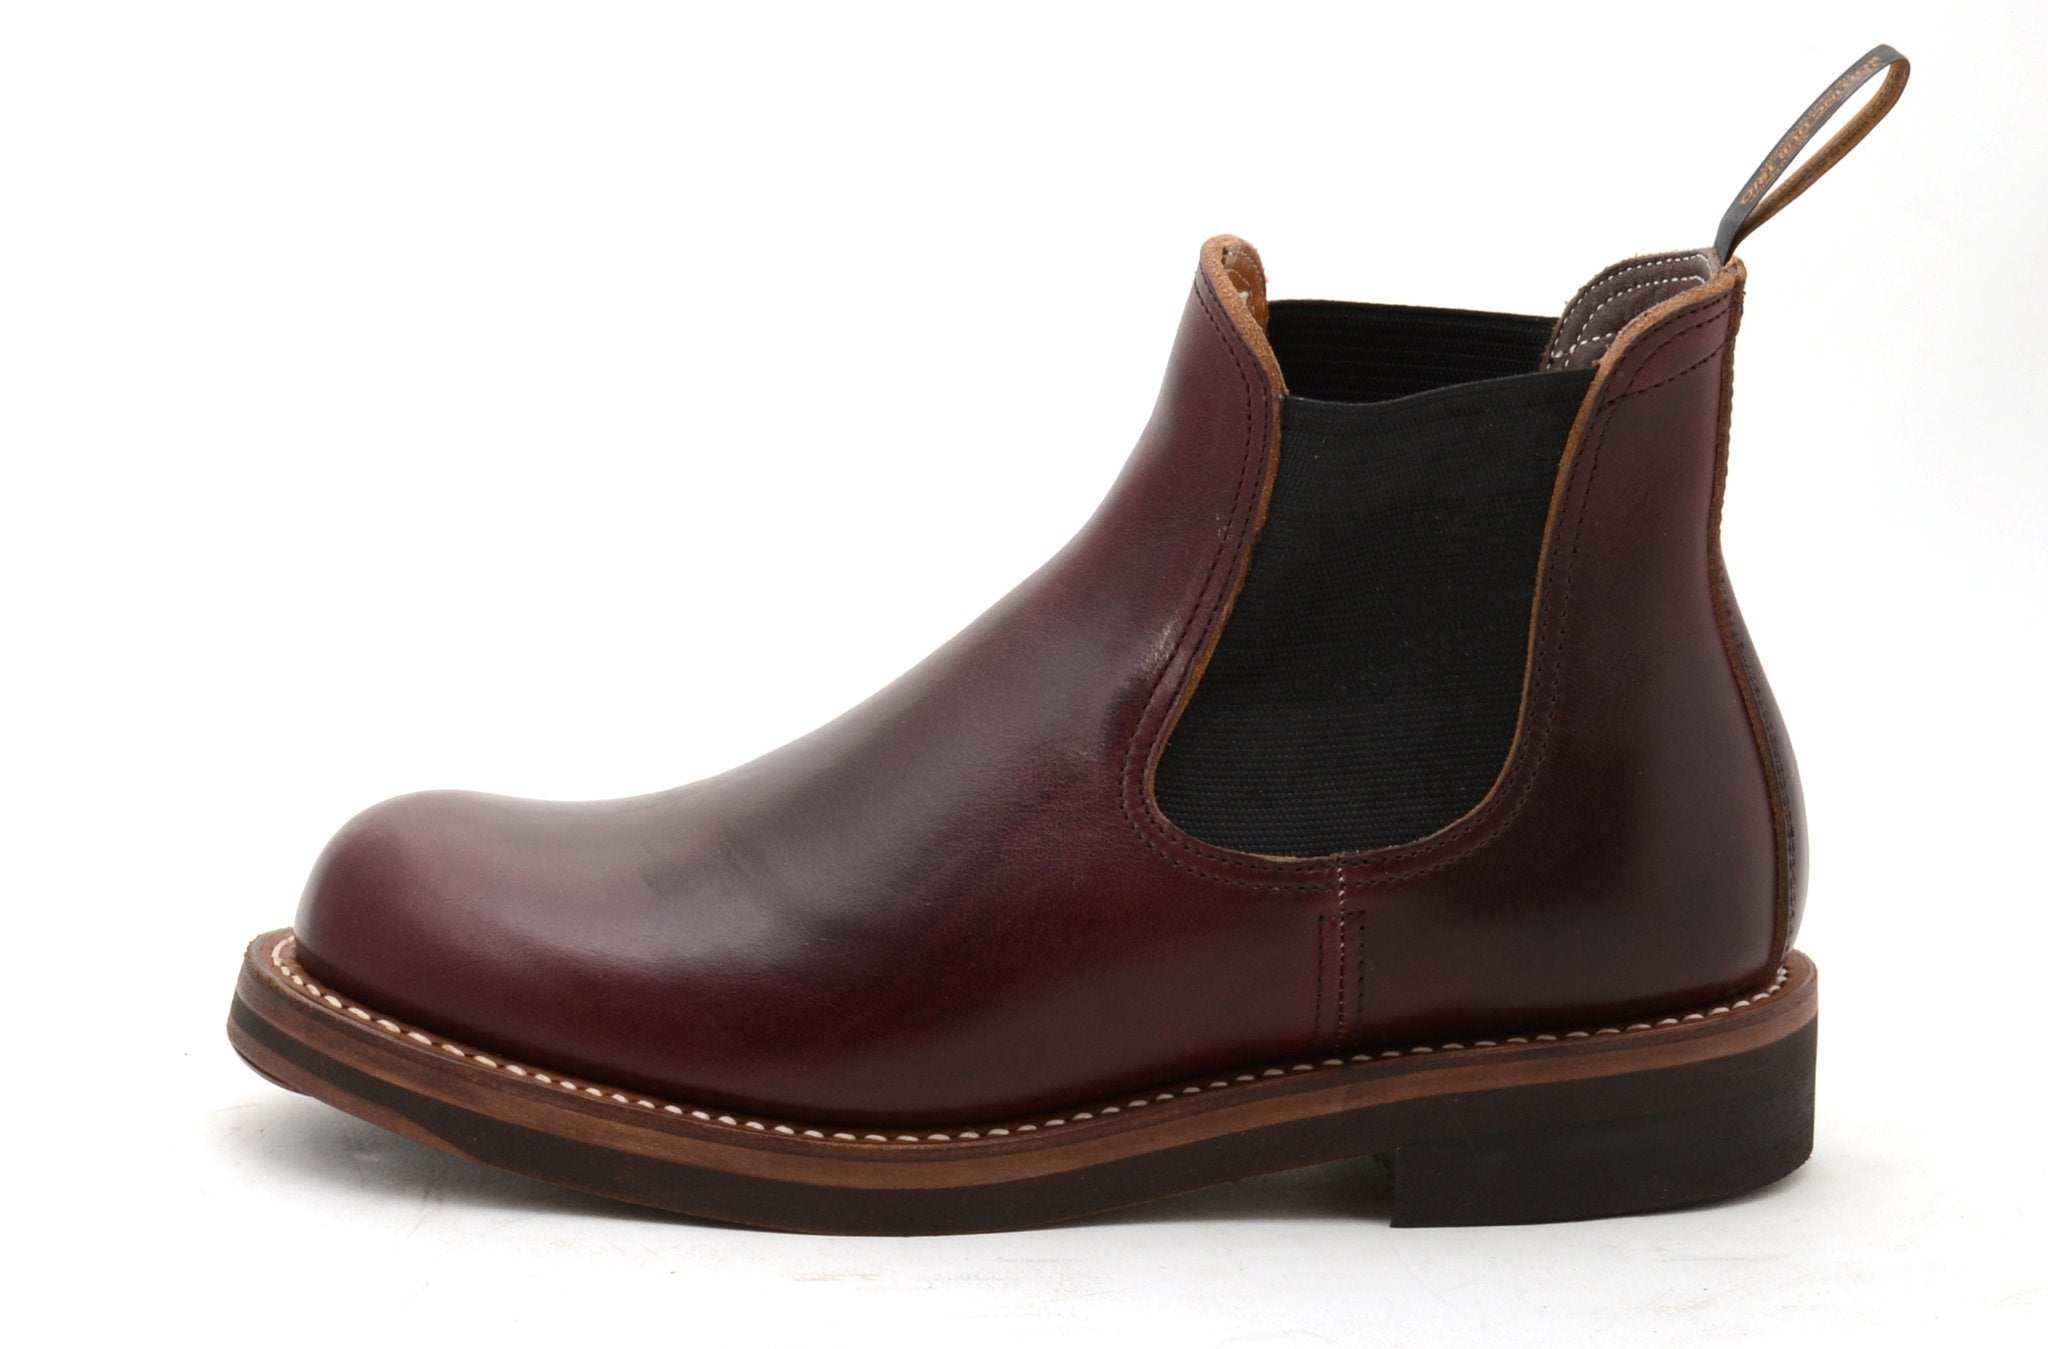 STAN Side-Gore Boot in Oil Burgundy